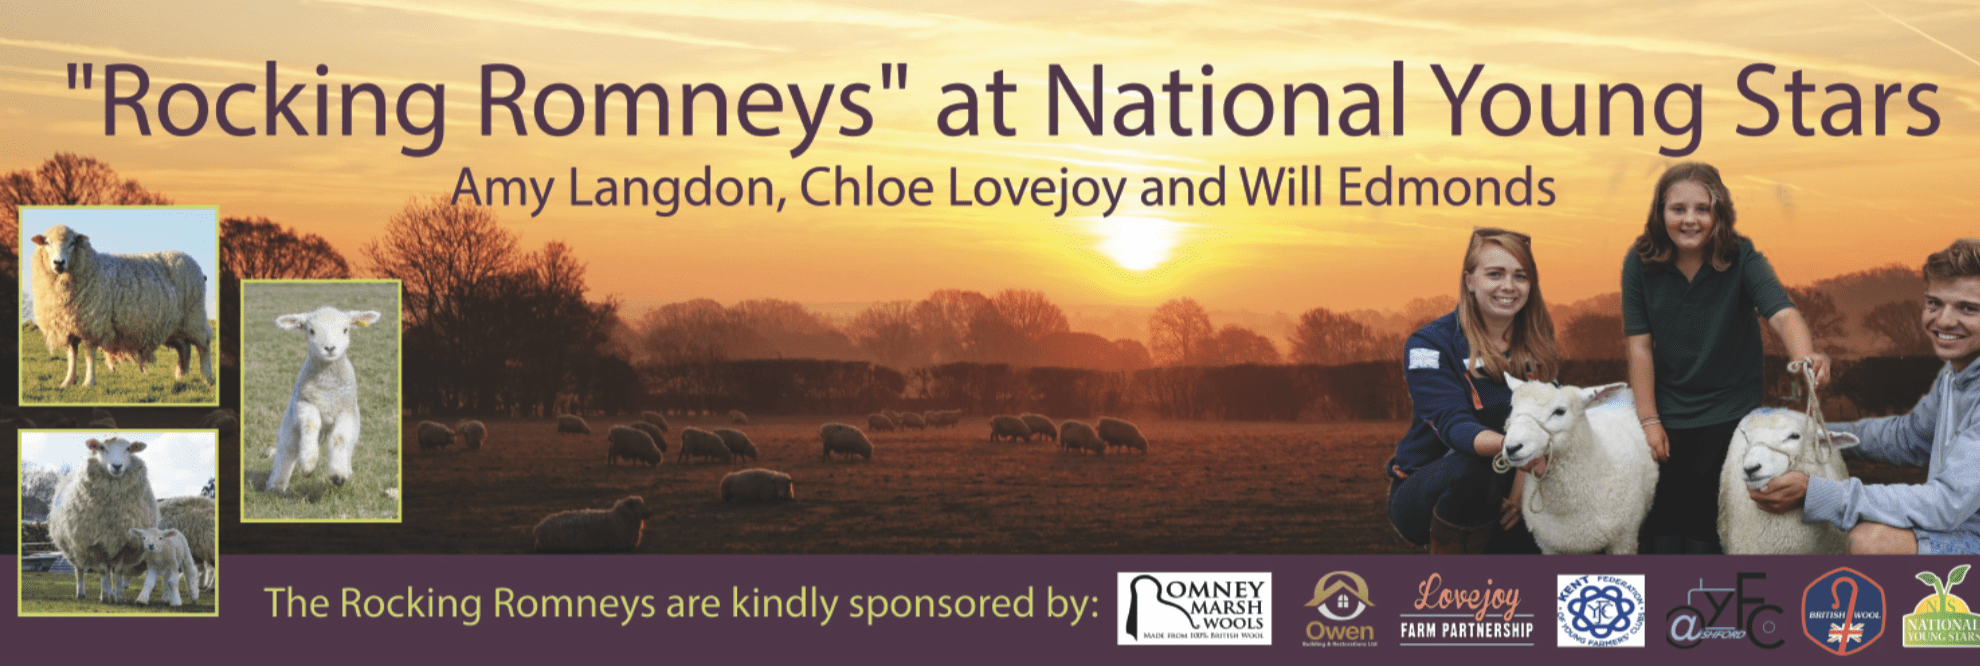 Banner design for Romney team at National Young Stars